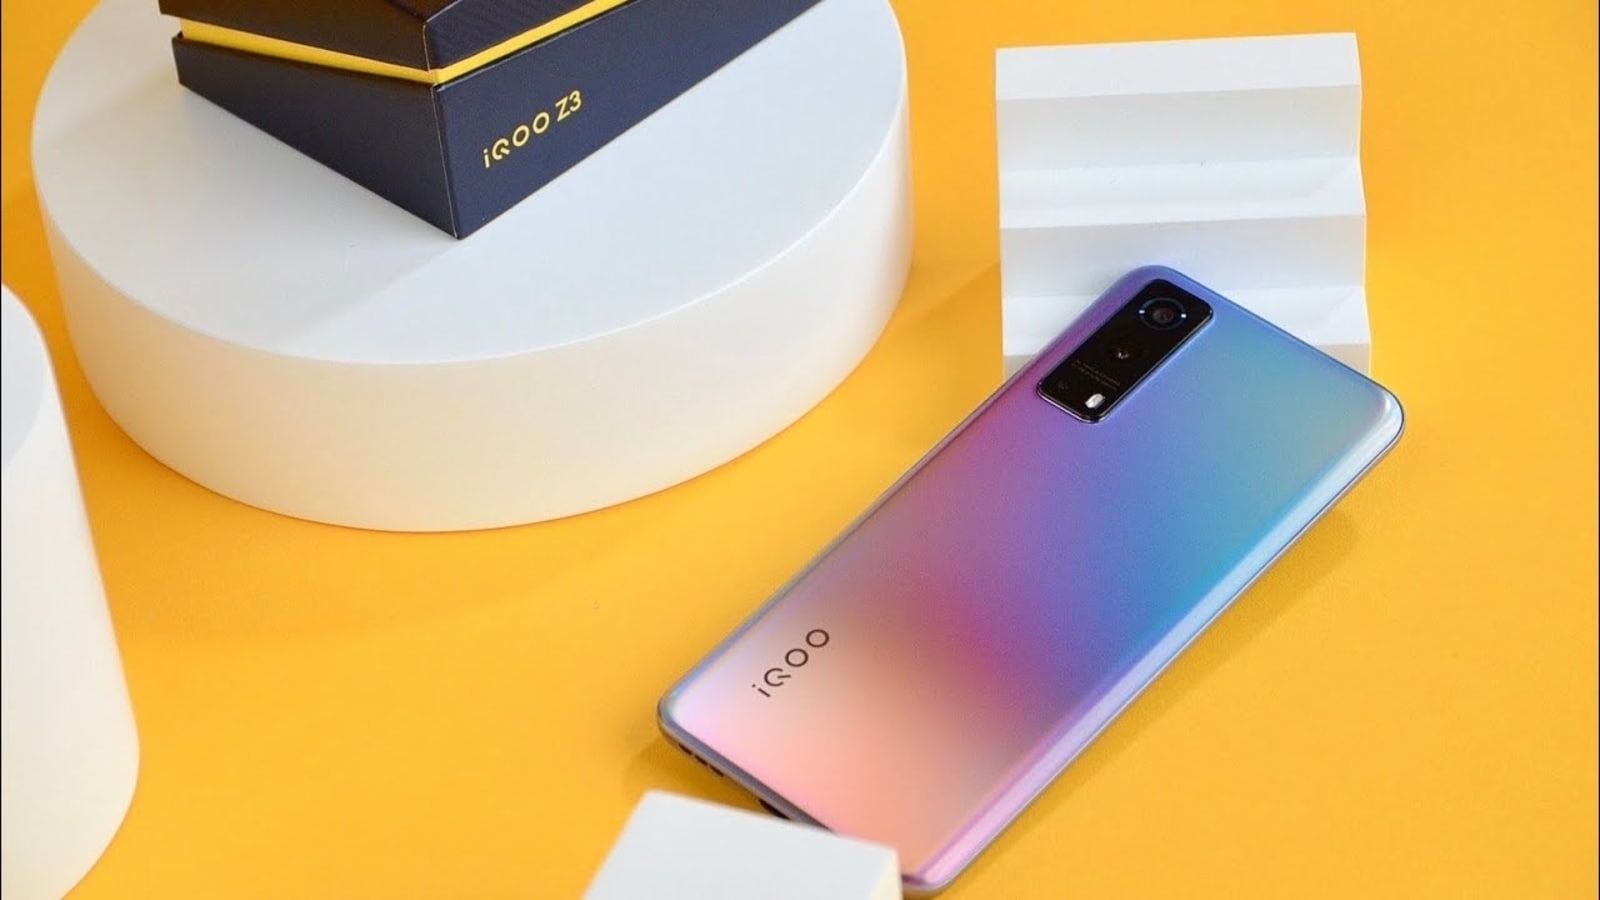 This upcoming iQoo Z3 Smartphone can be cheap with all the frills